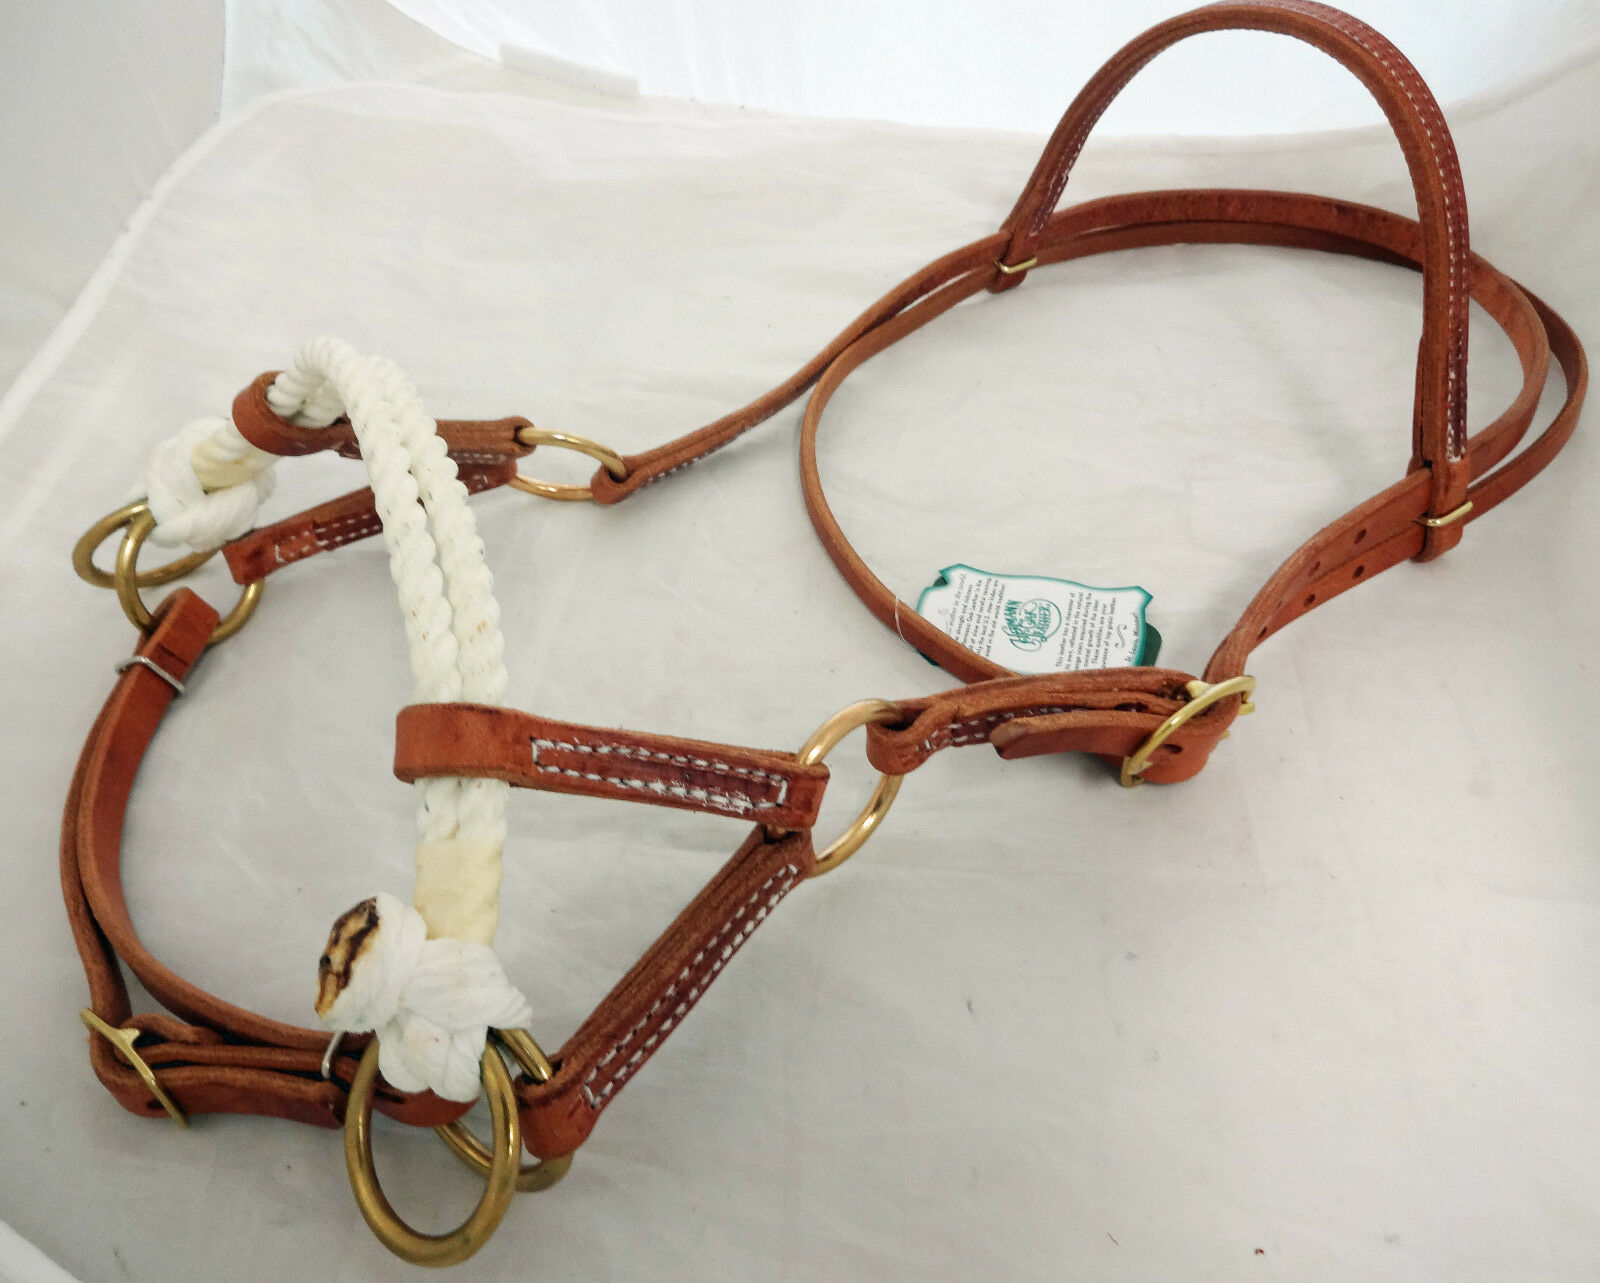 Side Pull Headstall  Double Rope Nose Hermann Oak Harness Leather Horse Berlin  a lot of surprises